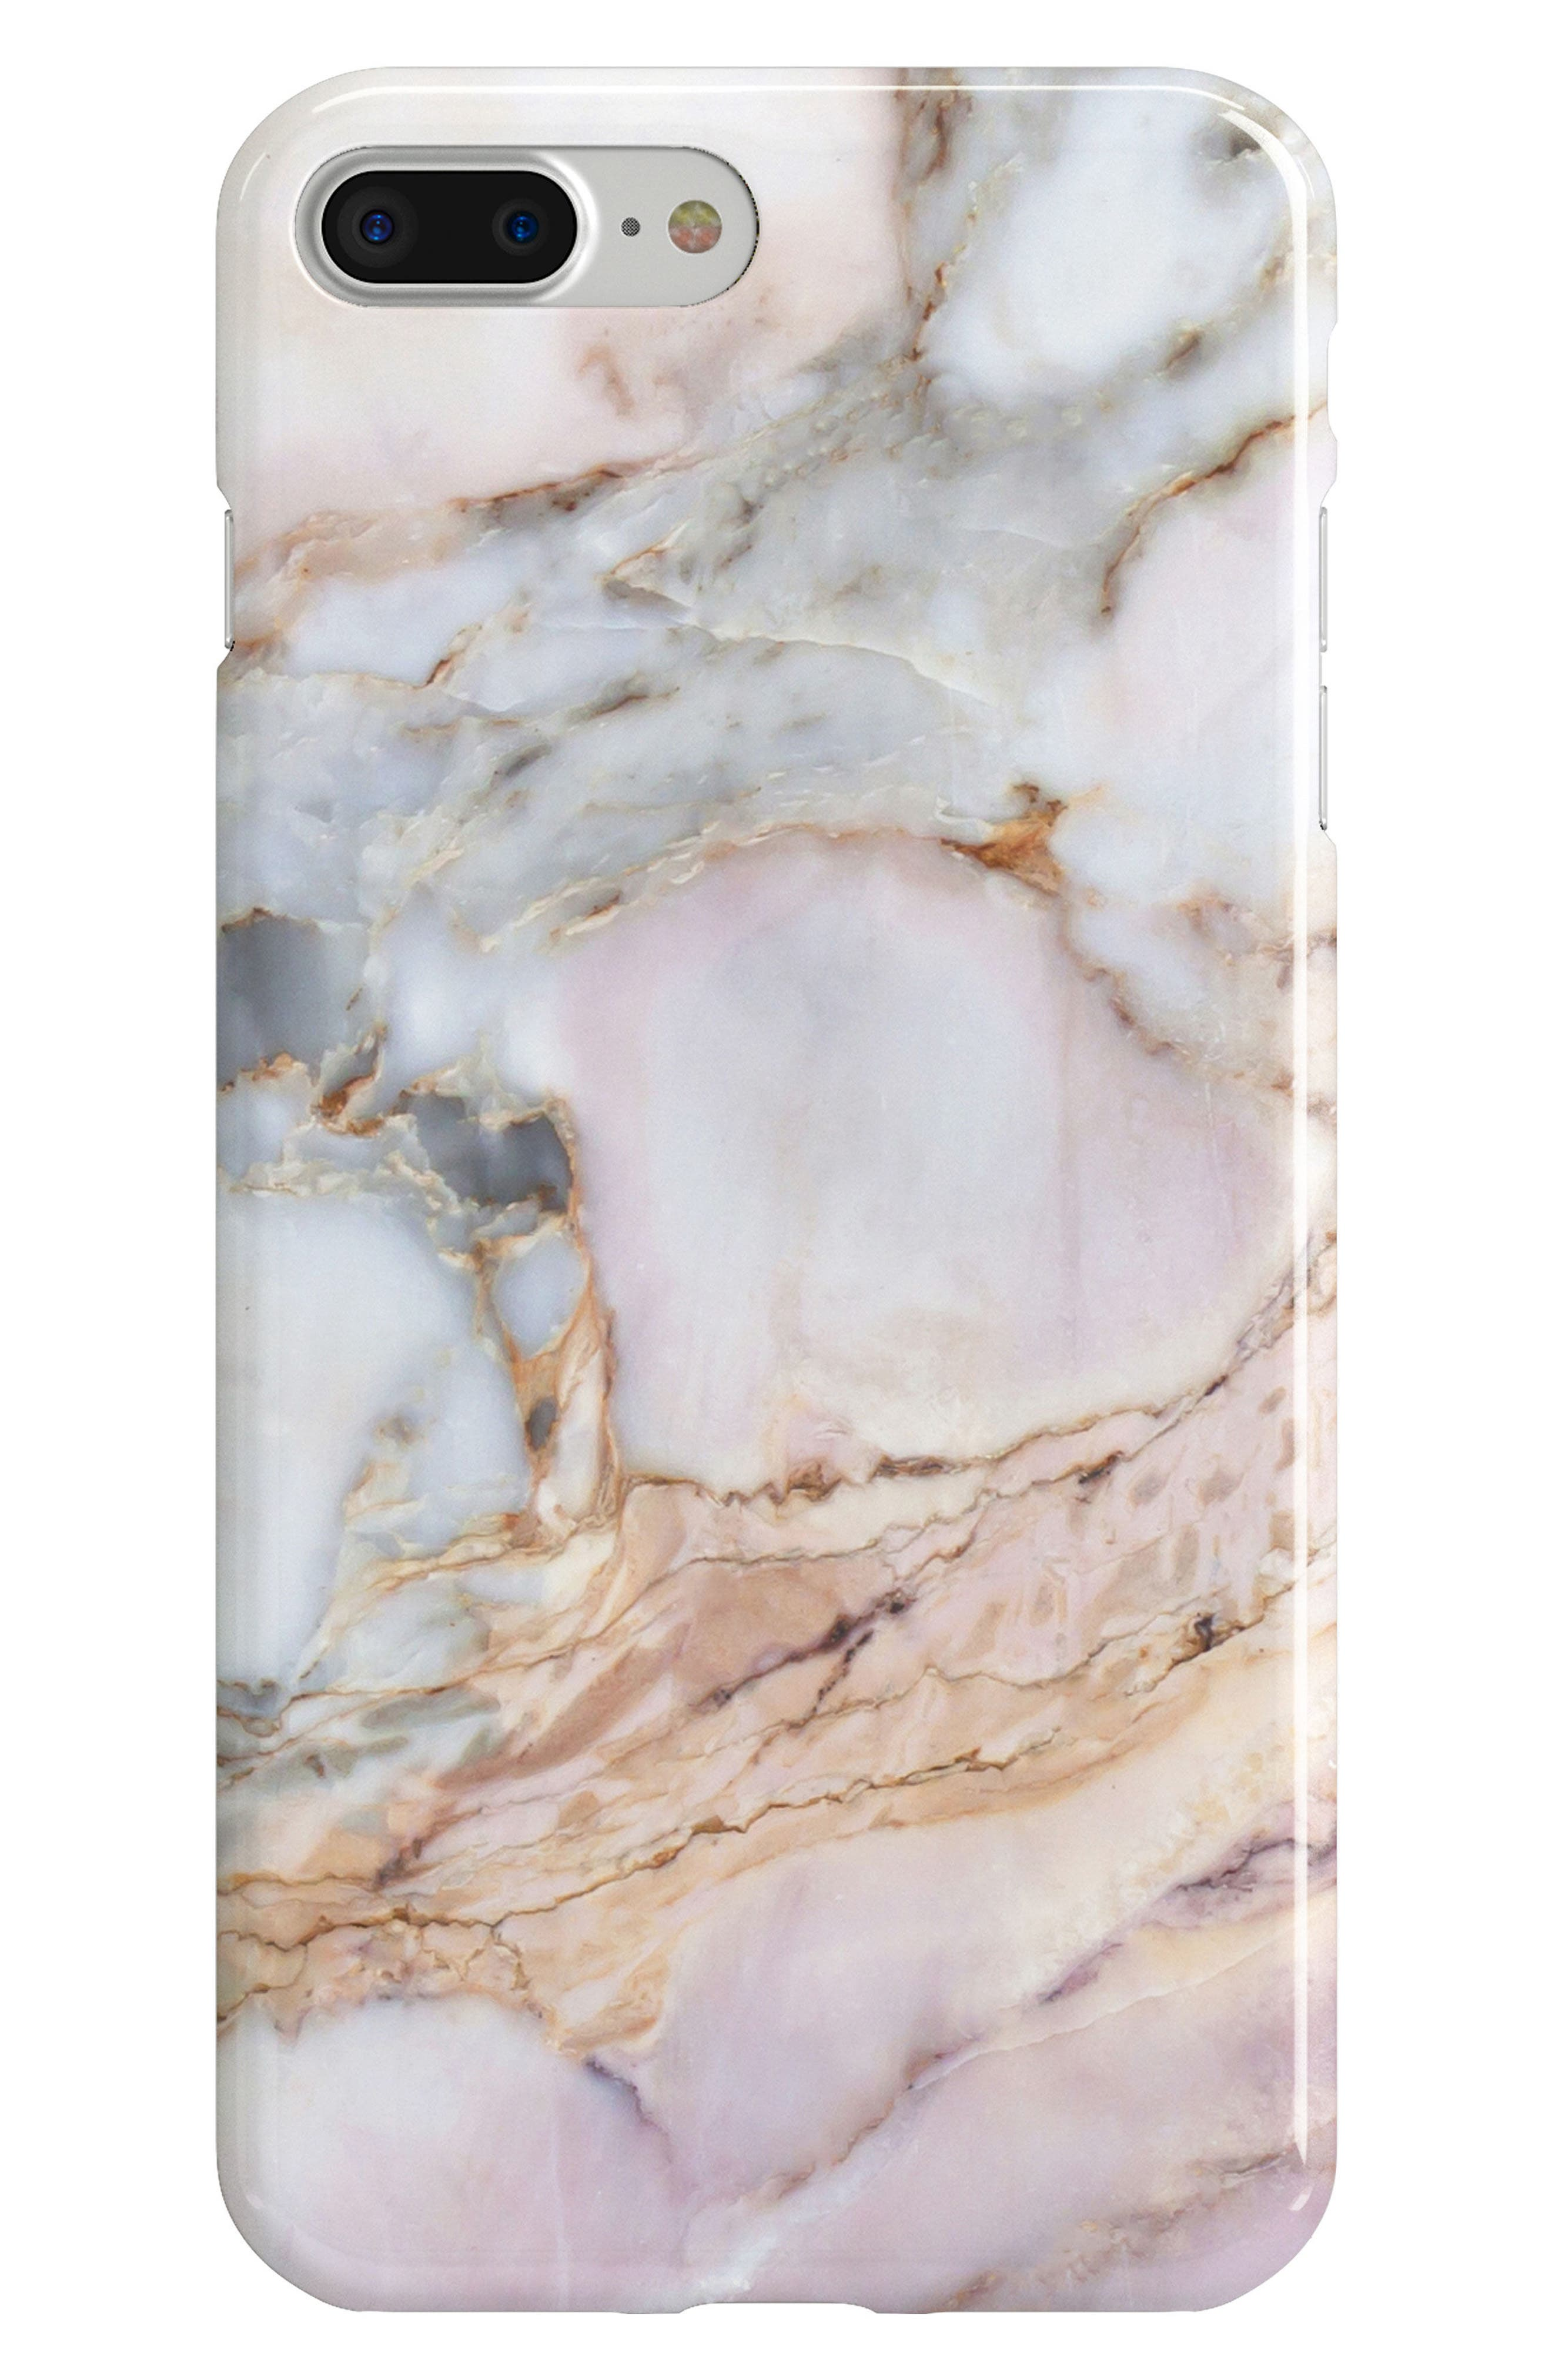 iphone 8 plus cell phone casesWhere To Get Iphone 8 Cases Covers For Iphone 8 Iphone 8 Cases Cool Designs Iphone 8 Nice Cases Best Designer Iphone Cases Louis Vuitton #7